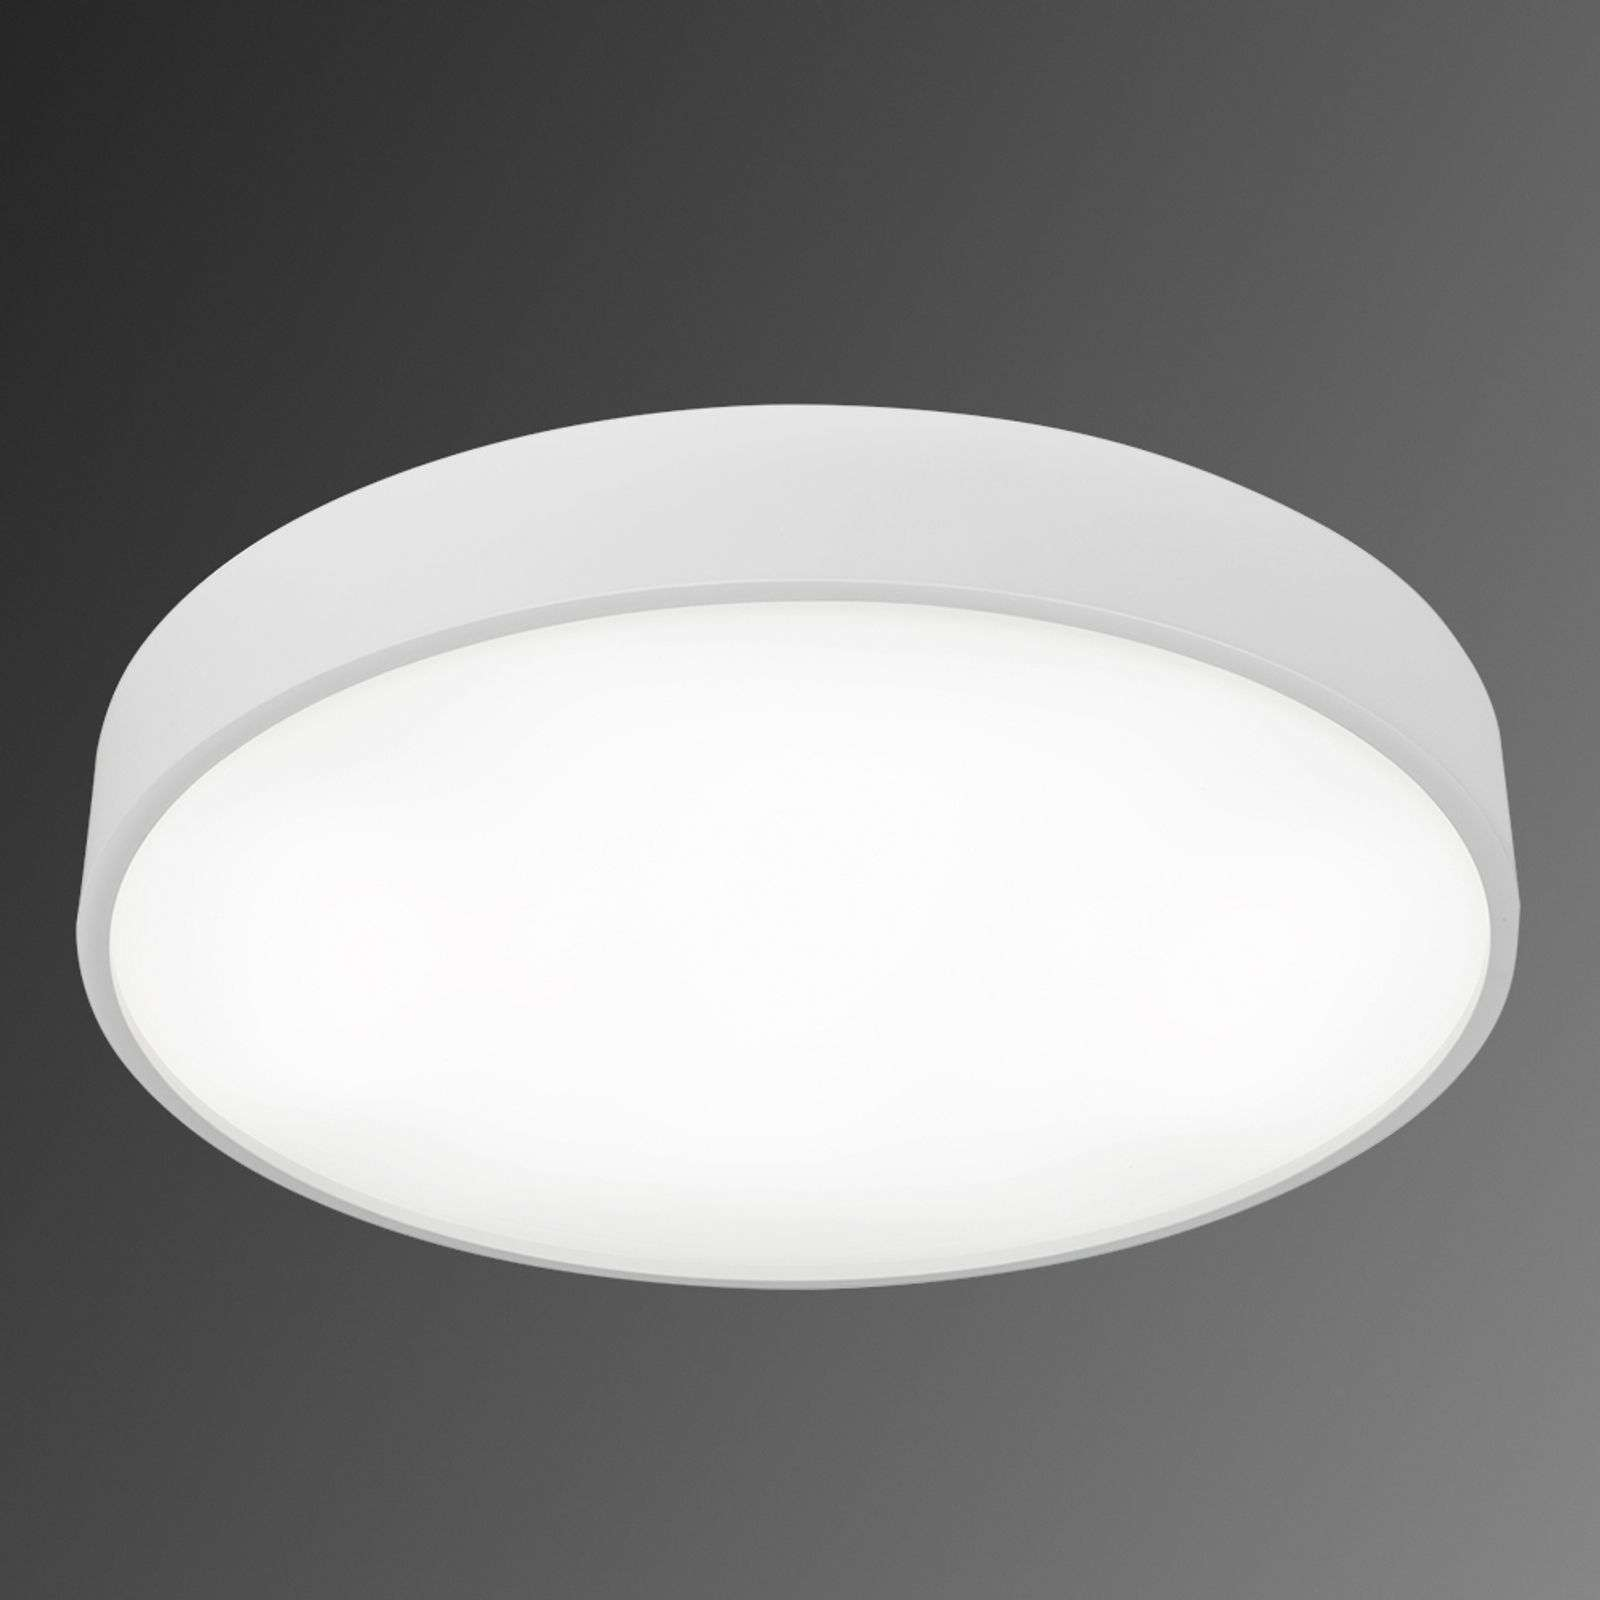 Ronde Modul S645 Led-plafondlamp in wit